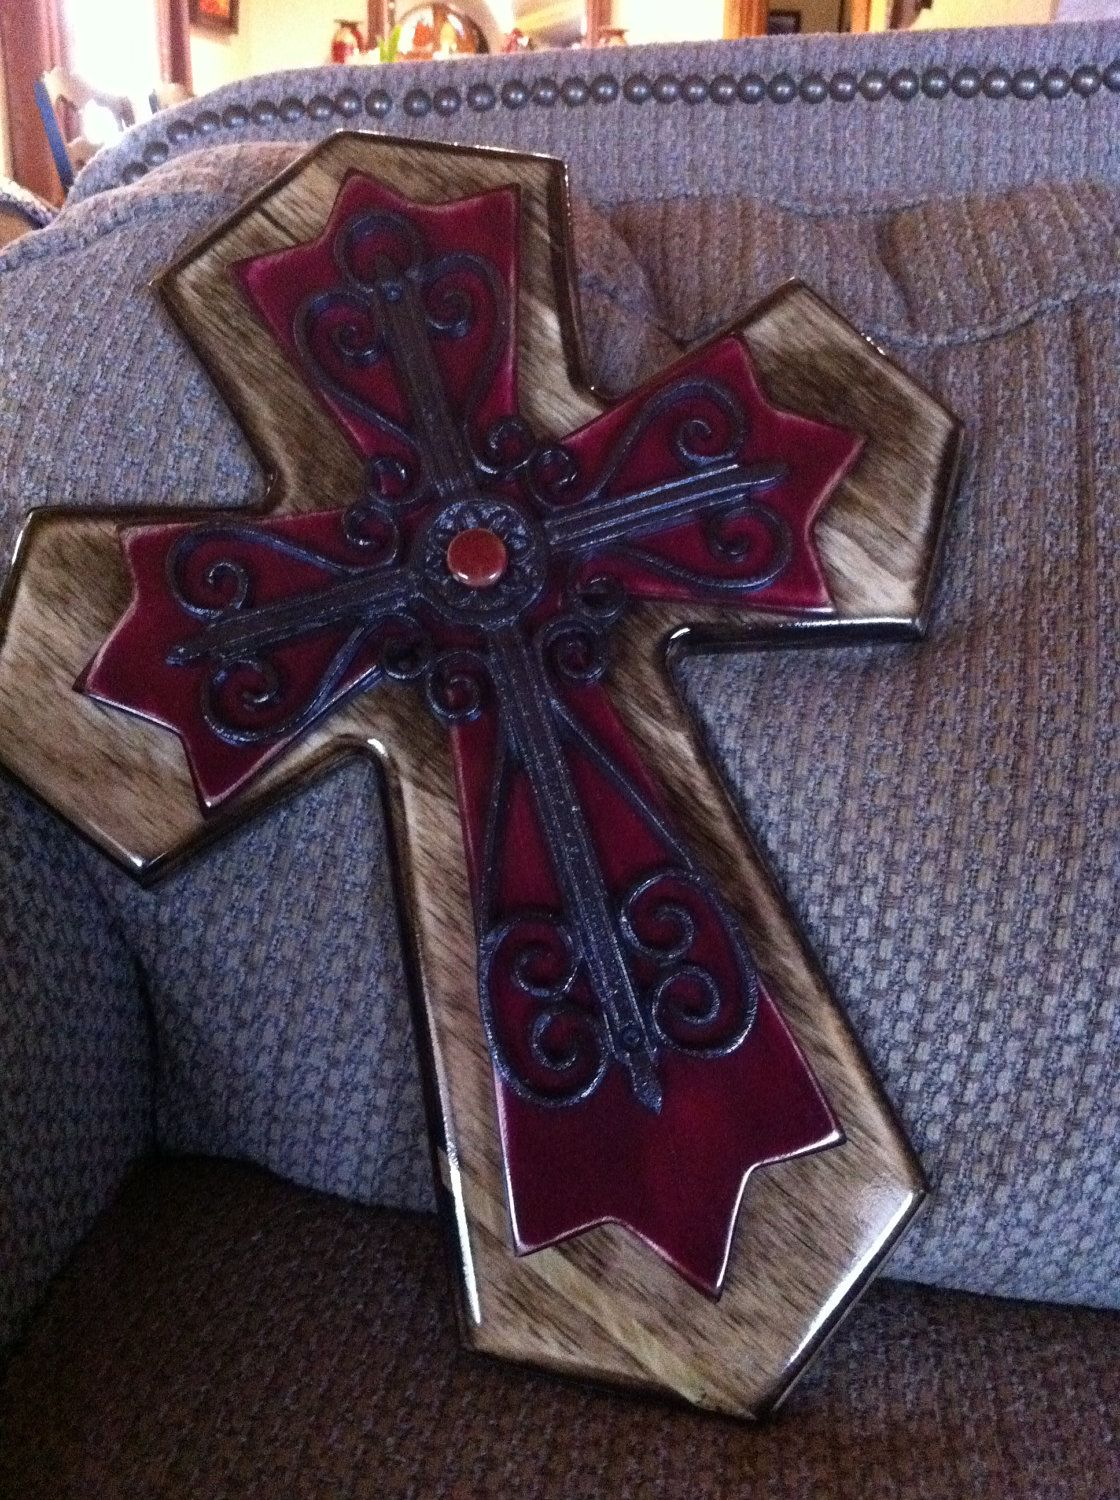 14+ Large wooden crosses for crafts info